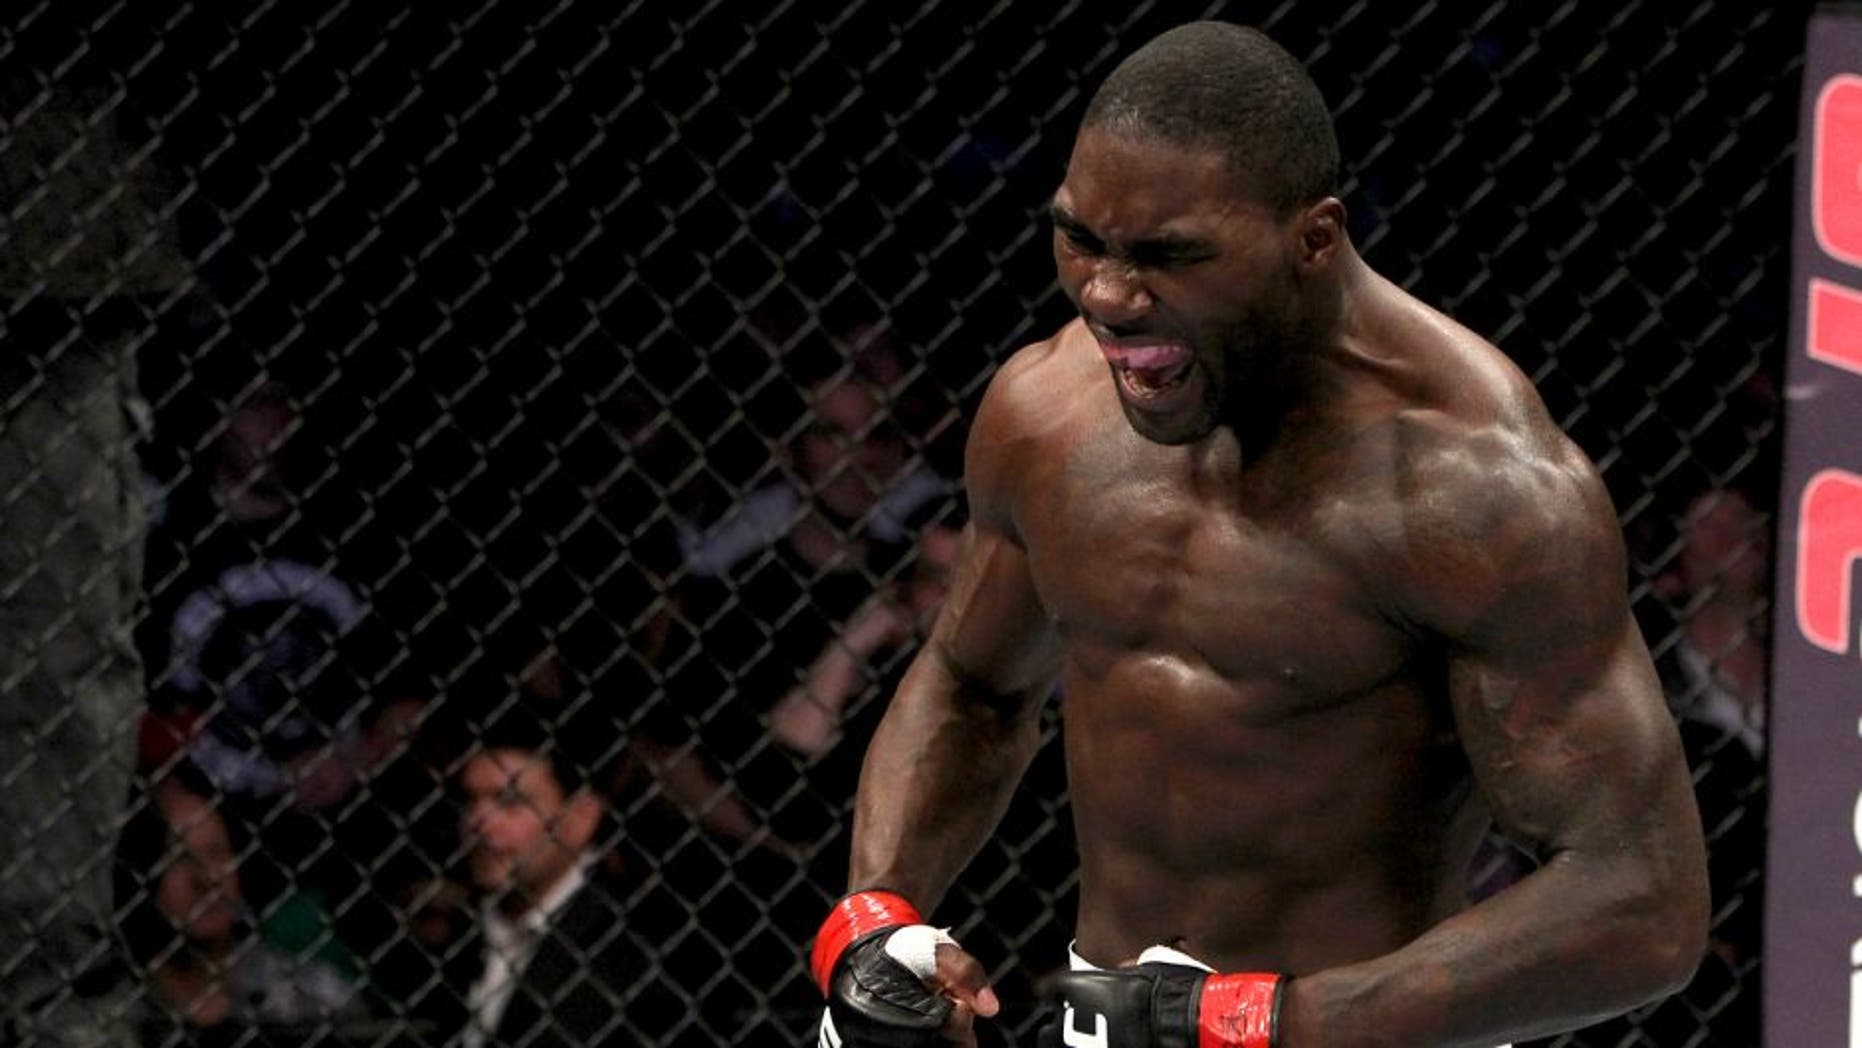 WASHINGTON, DC - OCTOBER 01: Anthony Johnson reacts after knocking out Charlie Brenneman during the UFC on Versus event at the Verizon Center on October 1, 2011 in Washington, DC. (Photo by Josh Hedges/Zuffa LLC/Zuffa LLC via Getty Images)